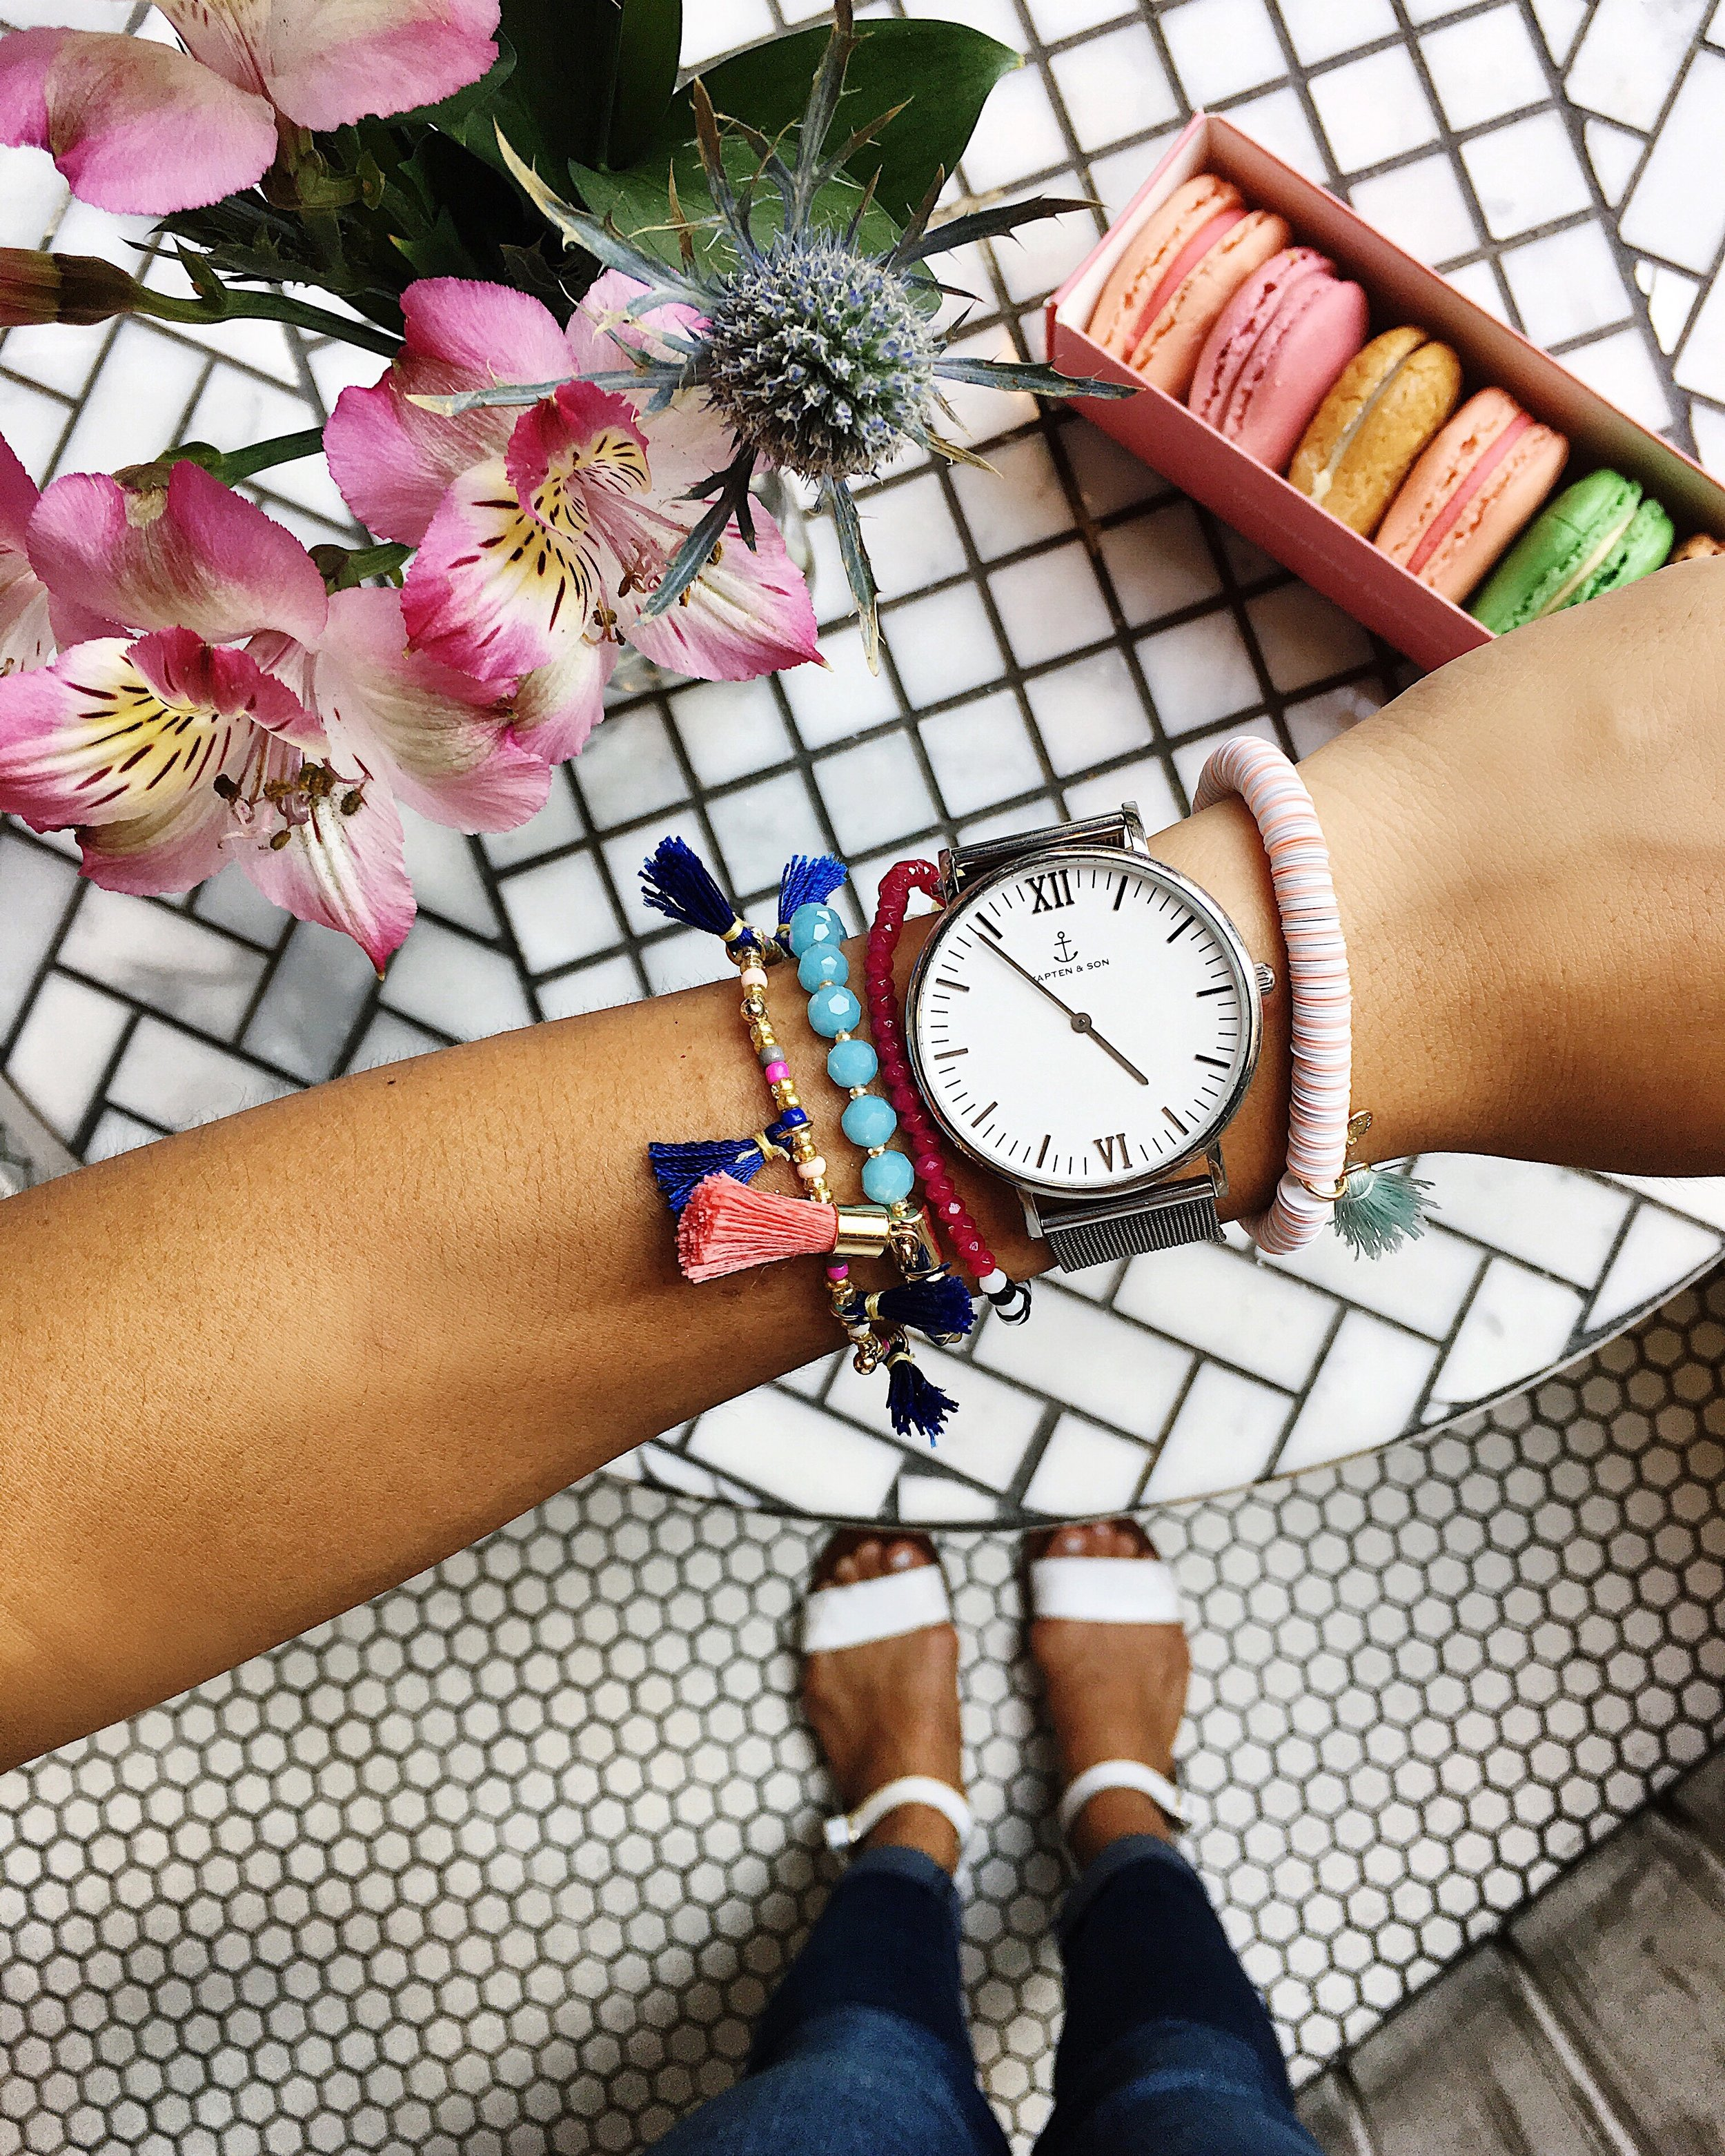 baubler bar bracelet kapten and son watch arm candy